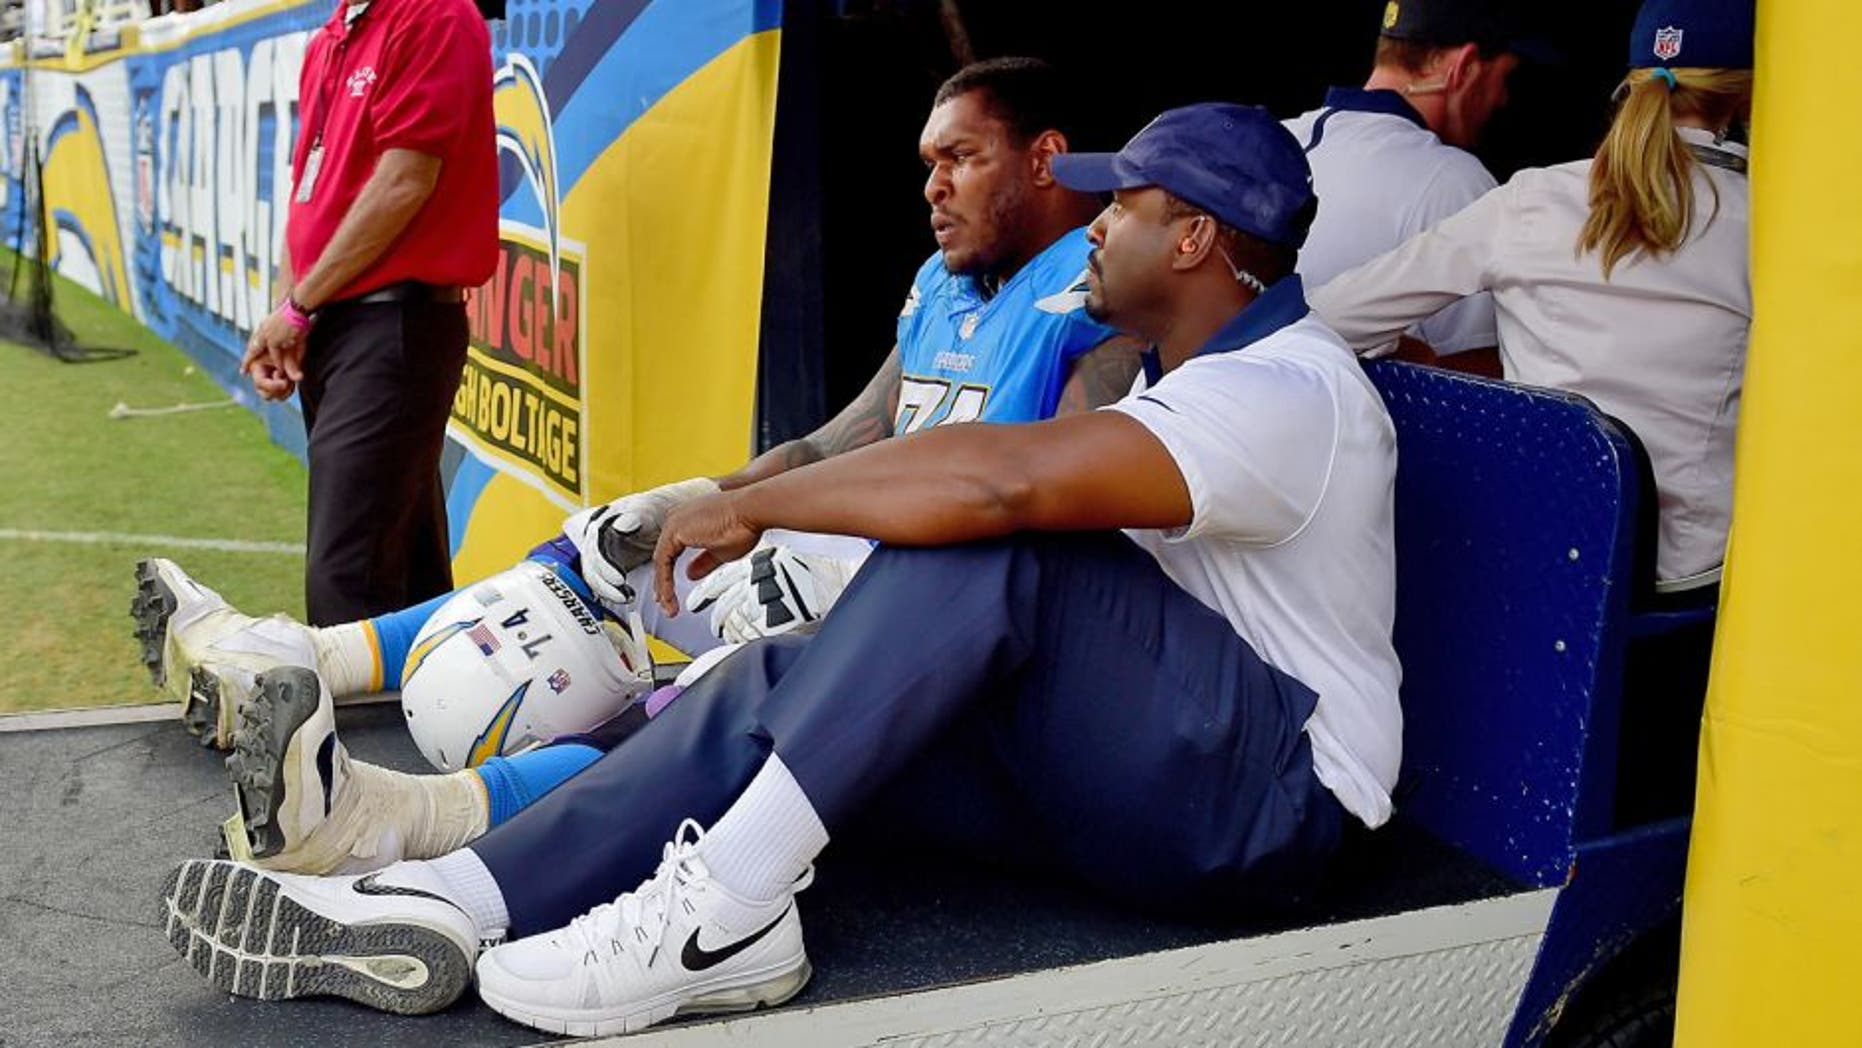 SAN DIEGO, CA - OCTOBER 25: Orlando Franklin #74 of the San Diego Chargers leaves the game aginst the Oakland Raiders at Qualcomm Stadium on October 25, 2015 in San Diego, California. (Photo by Harry How/Getty Images)